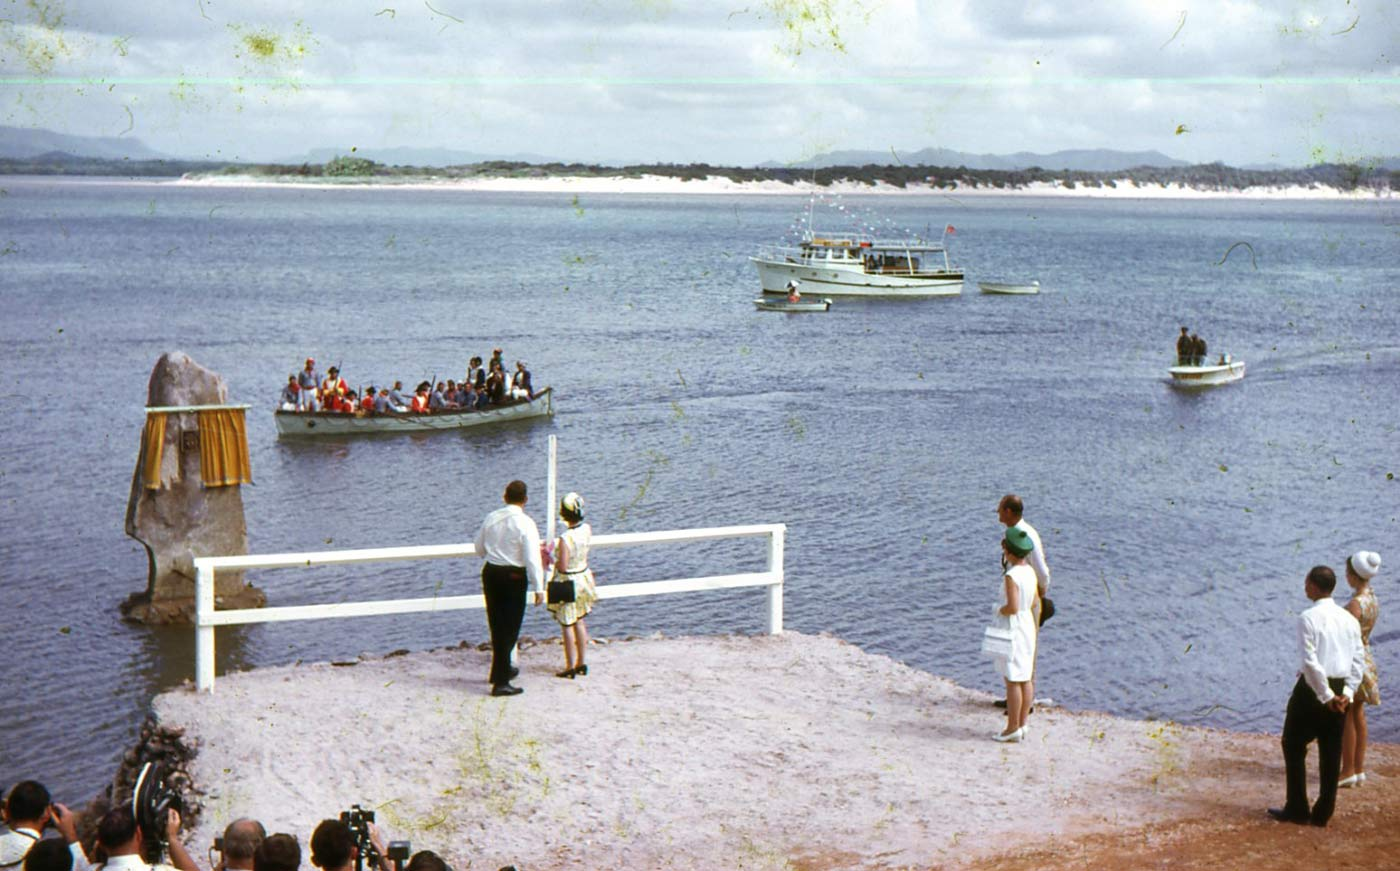 Colour photo of Queen Elizabeth II attempting to draw curtains using a rope attached that is covering a plaque fixed to a rock. The rock is on the Endeavour River and there is a rowboat with men in periodic costume looking on. There are camera crew filming and taking photos in the foreground. - click to view larger image